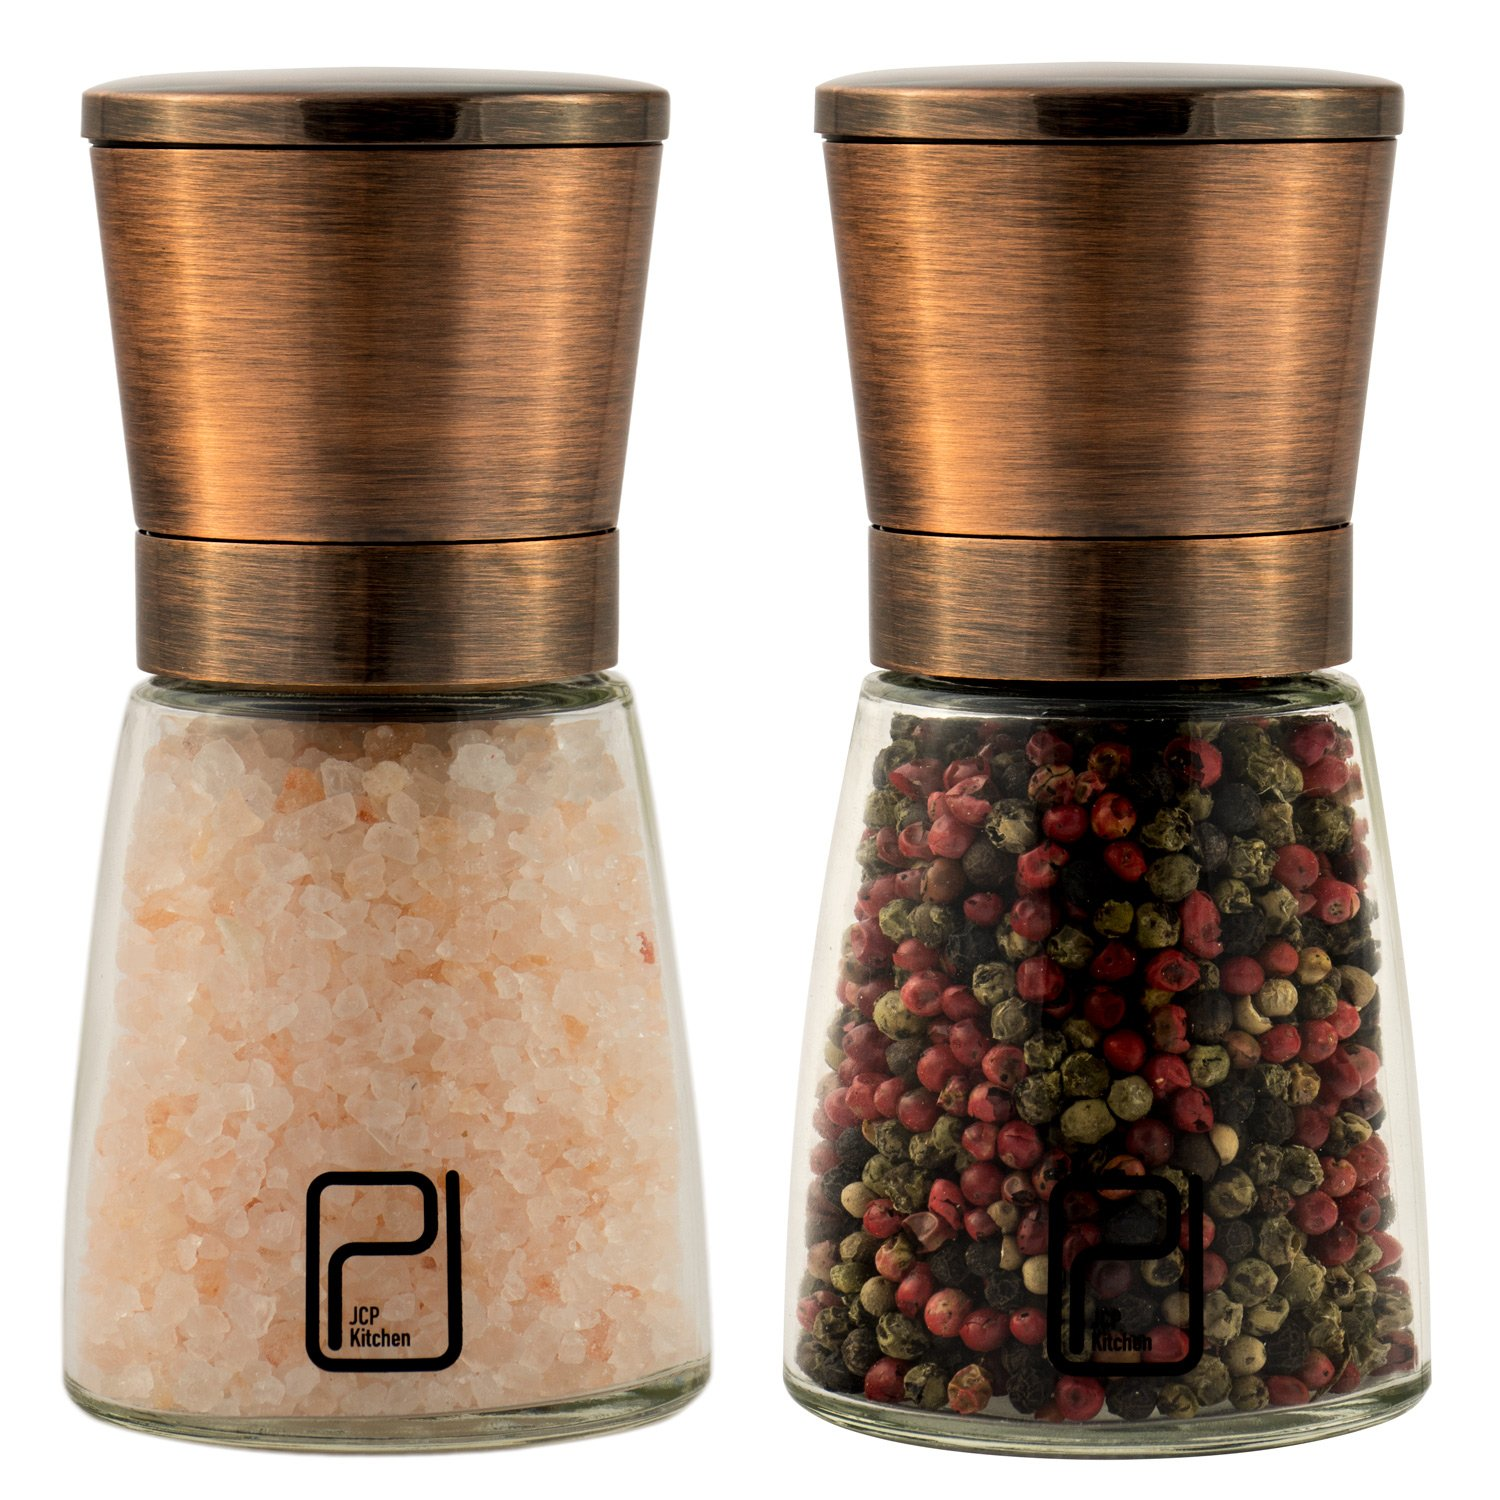 Premium Salt and Pepper Grinder Set - Best Copper Stainless Steel Mill for Home Chef, Magnetic Lids, Smooth Ceramic Spice Grinders with Easy Adjustable Coarseness, Top Salt and Pepper Shakers - 6 Oz by JCPKitchen